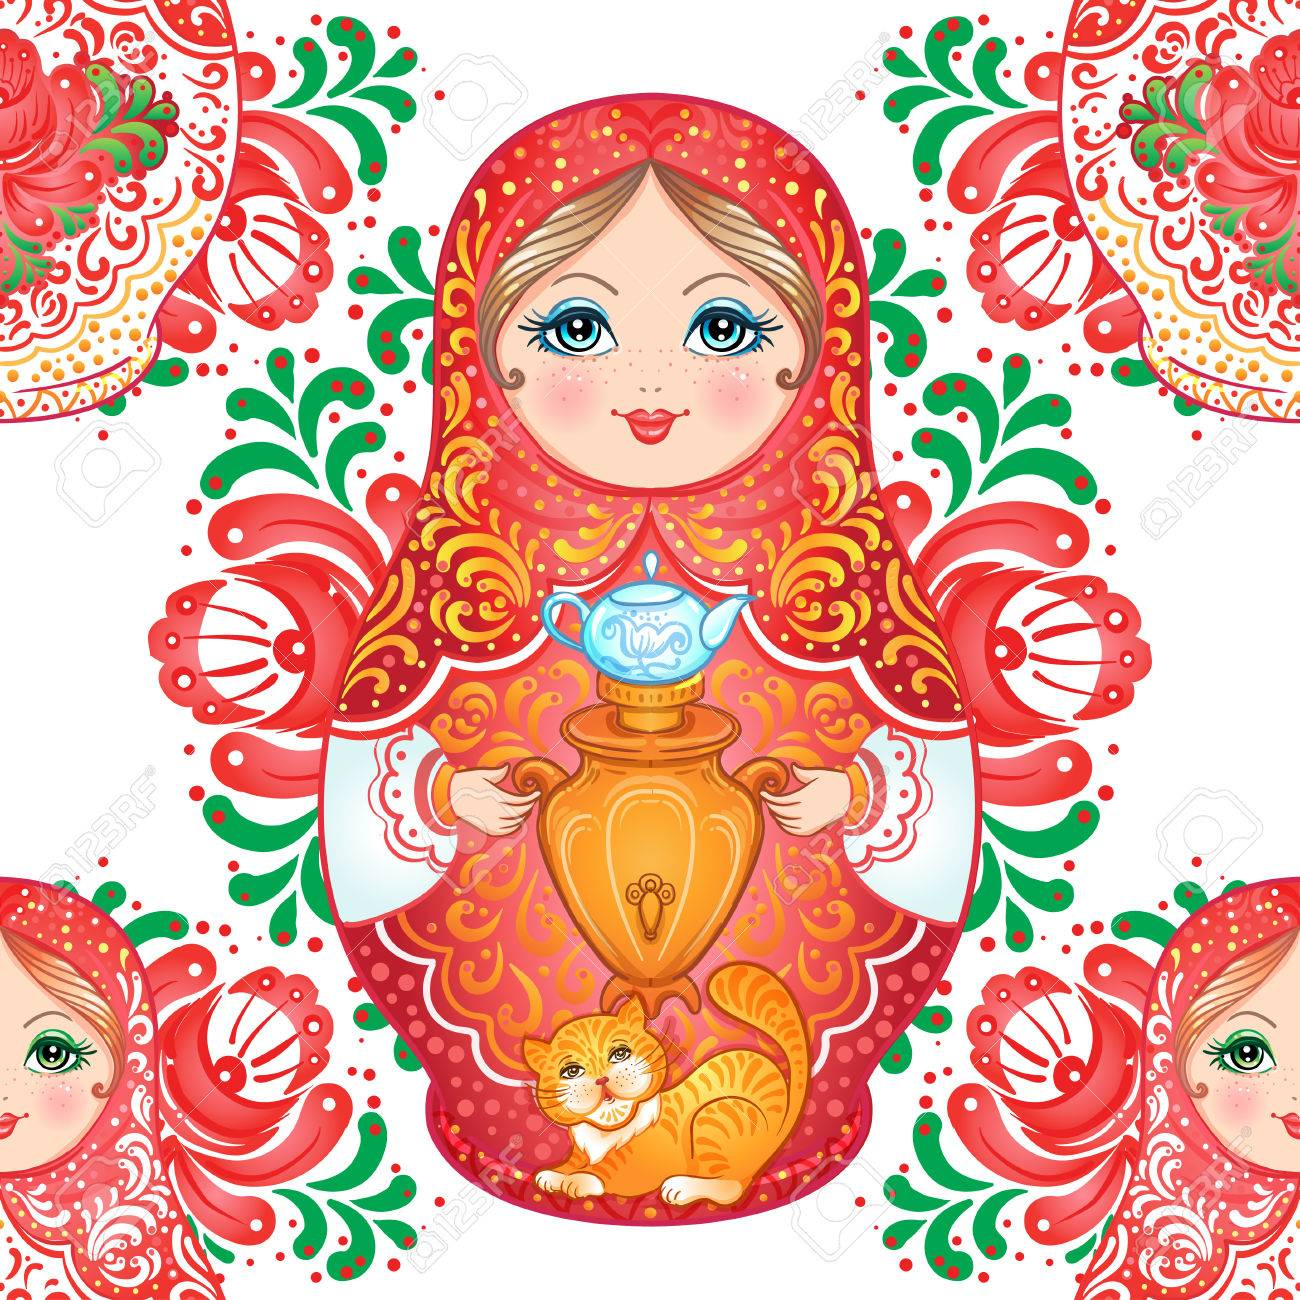 Babushka (matryoshka) seamless pattern. Traditional Russian wooden nesting doll with painted flowers. Folk arts and crafts. Vector illustration in cartoon style. Retro Souvenir from Russia - 87434721